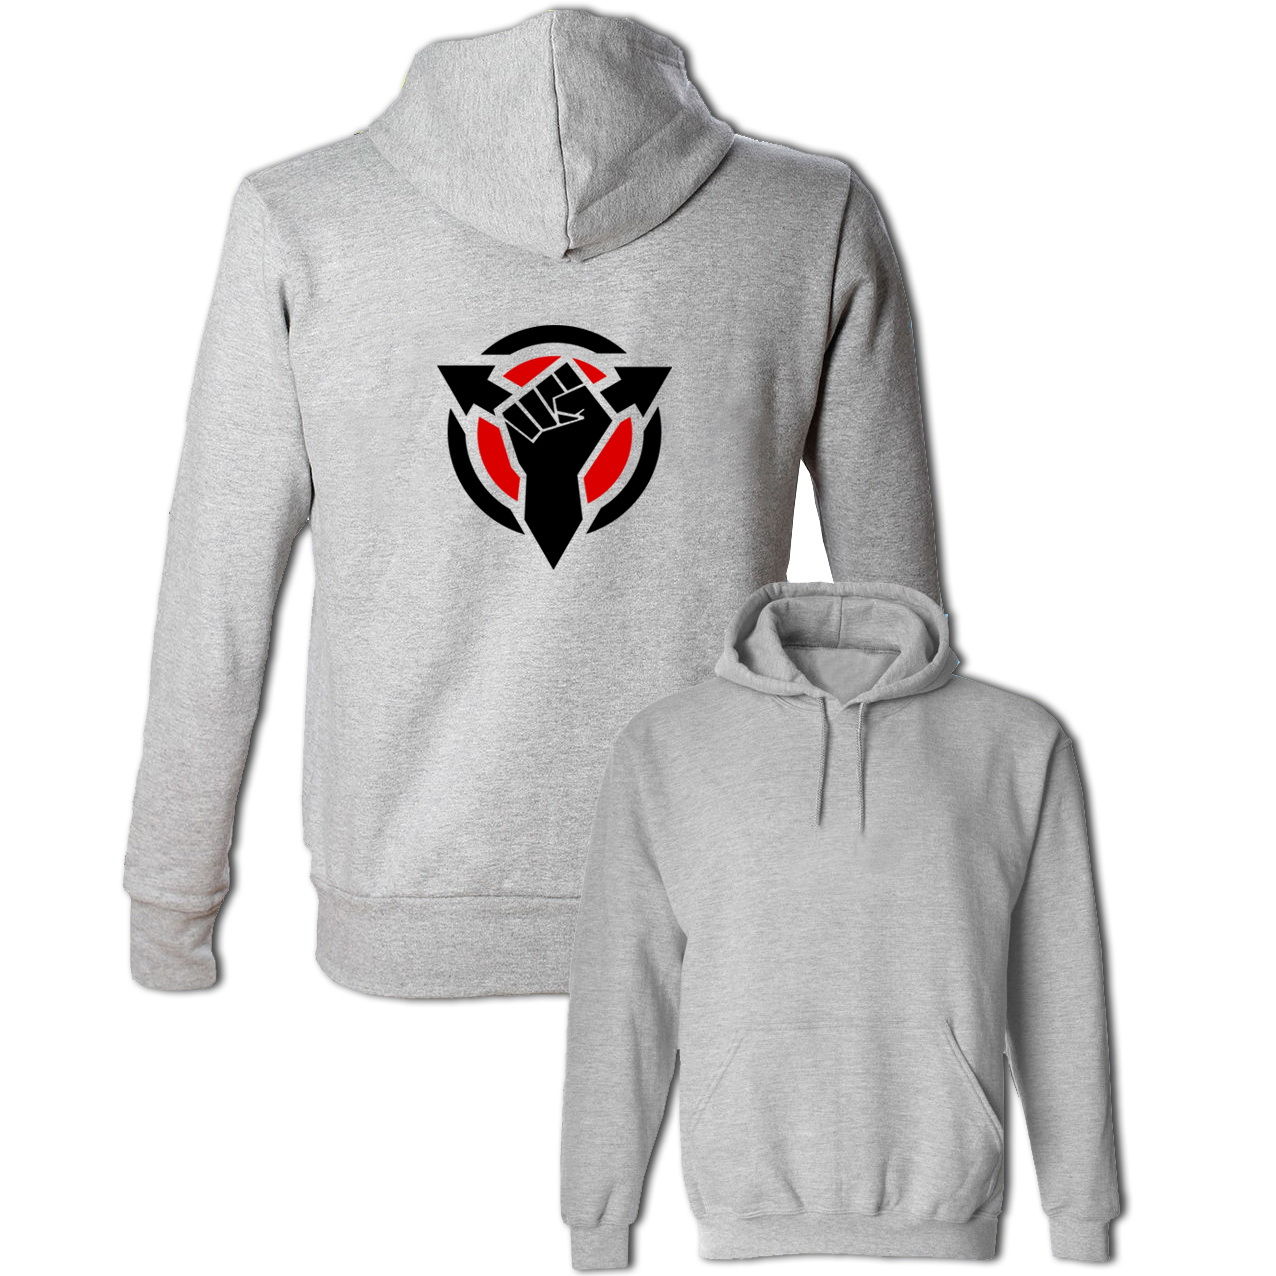 Killzone Black Hand Design Hoodie Mens Womens Boys Girls Sweatshirt Fashion Hip Hop Hooded Tops Multi Color Cotton Outwear